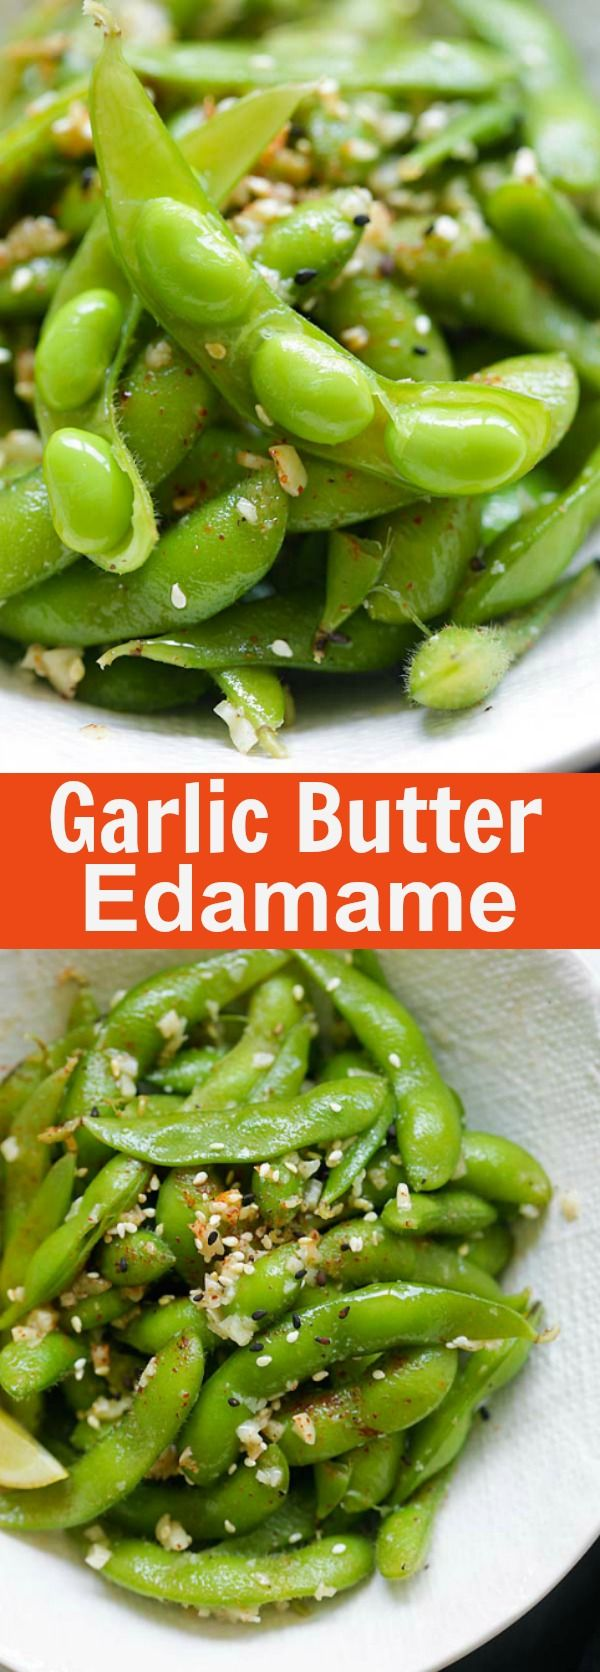 Garlic Butter Edamame – healthy edamame coated with garlicky and buttery goodness. The easiest appetizer you can whip up in 10 mins | rasamalaysia.com